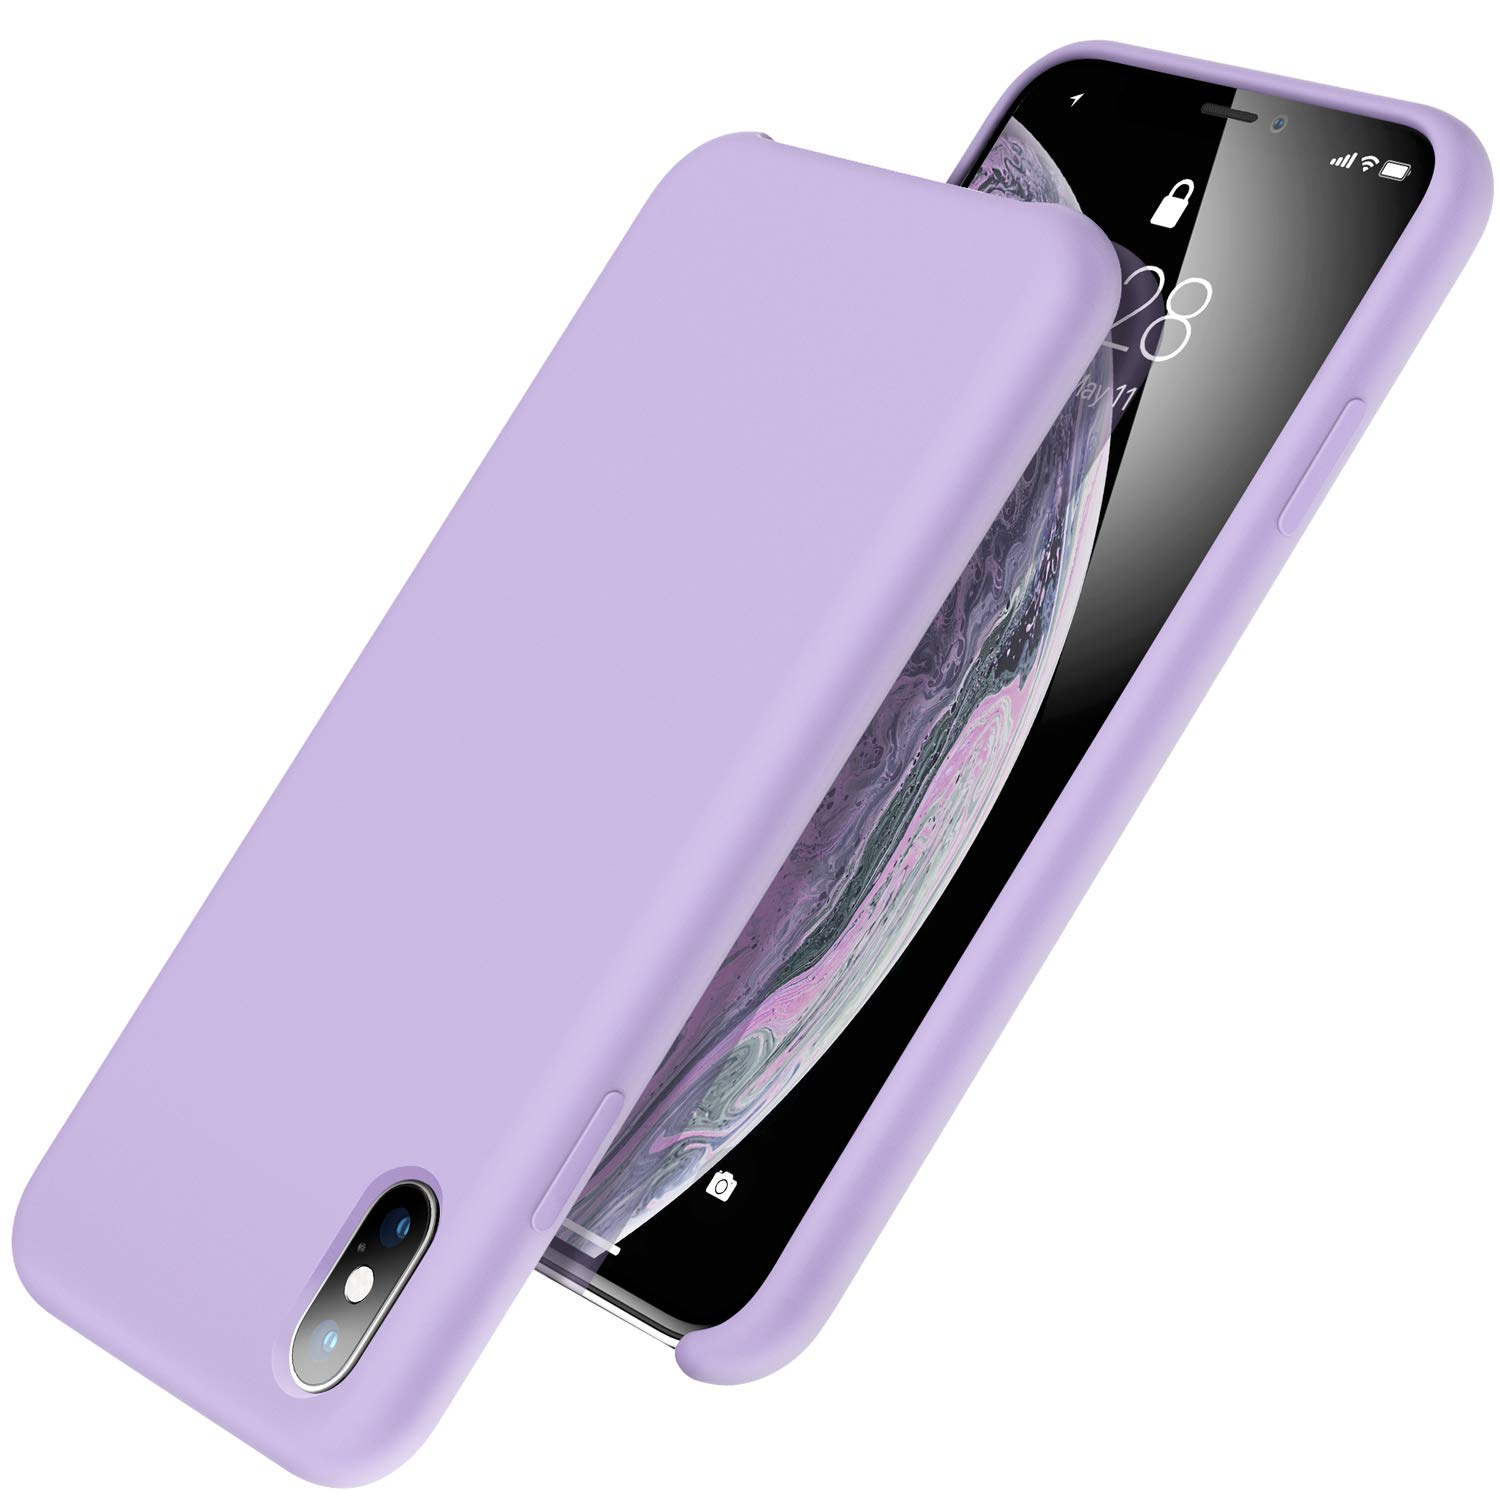 watch 21716 d051e UGT iPhone Xs Max Case, Liquid Silicone Rubber Slim Shockproof Case  Microfiber Cloth Lining Compatible with Apple iPhone Xs Max 6.5 inch,  Lavender